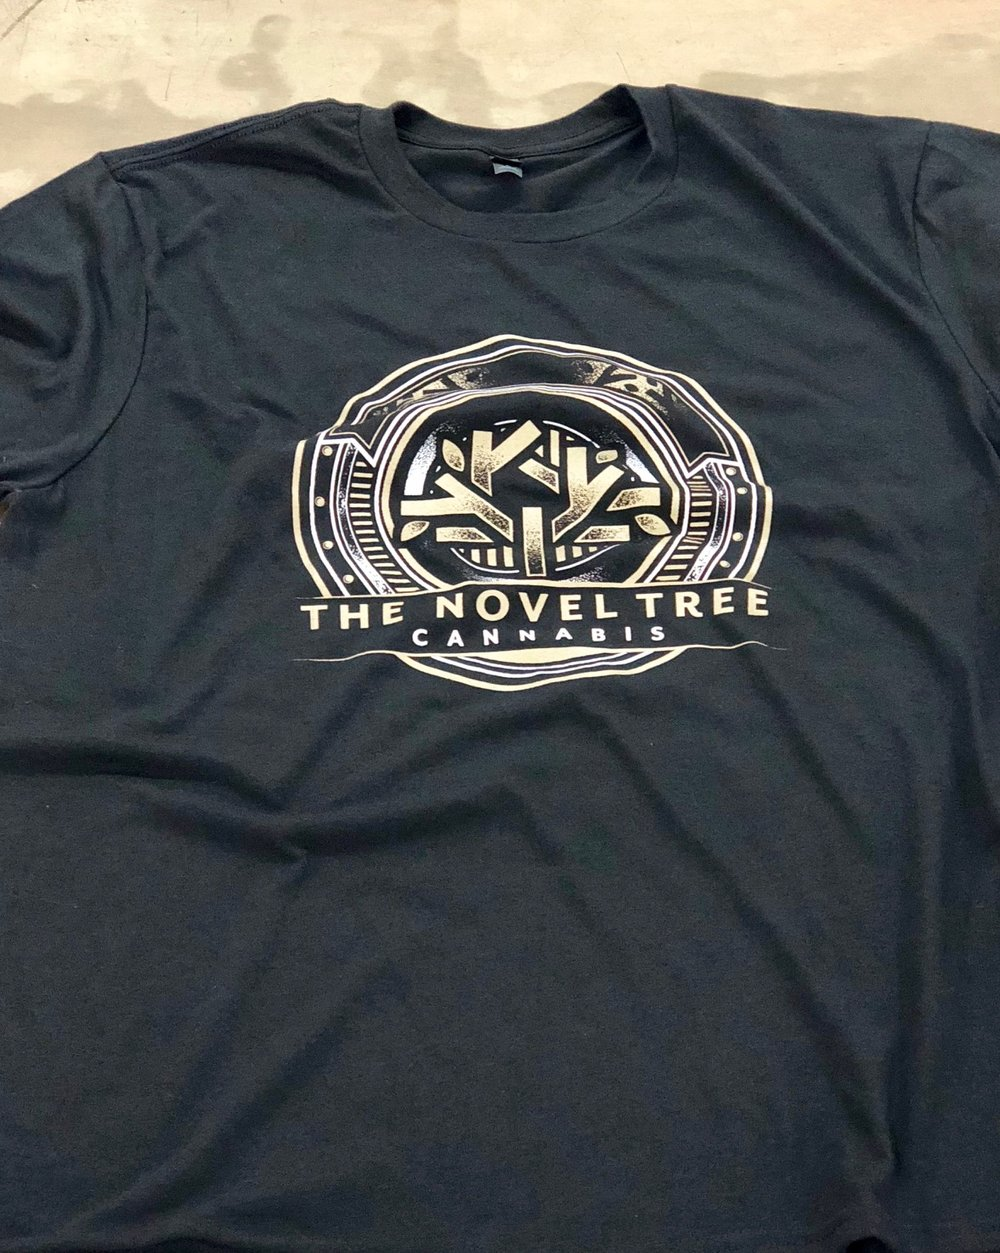 logounltd_laser_etching_embroidery_screen_printing_corporate_apparel_uniform_custom_tshirts_uniforms_dye_sublimation_kirkland_bellevue_seattle_redmond_branded_merchandise_promotional_products (23).jpg